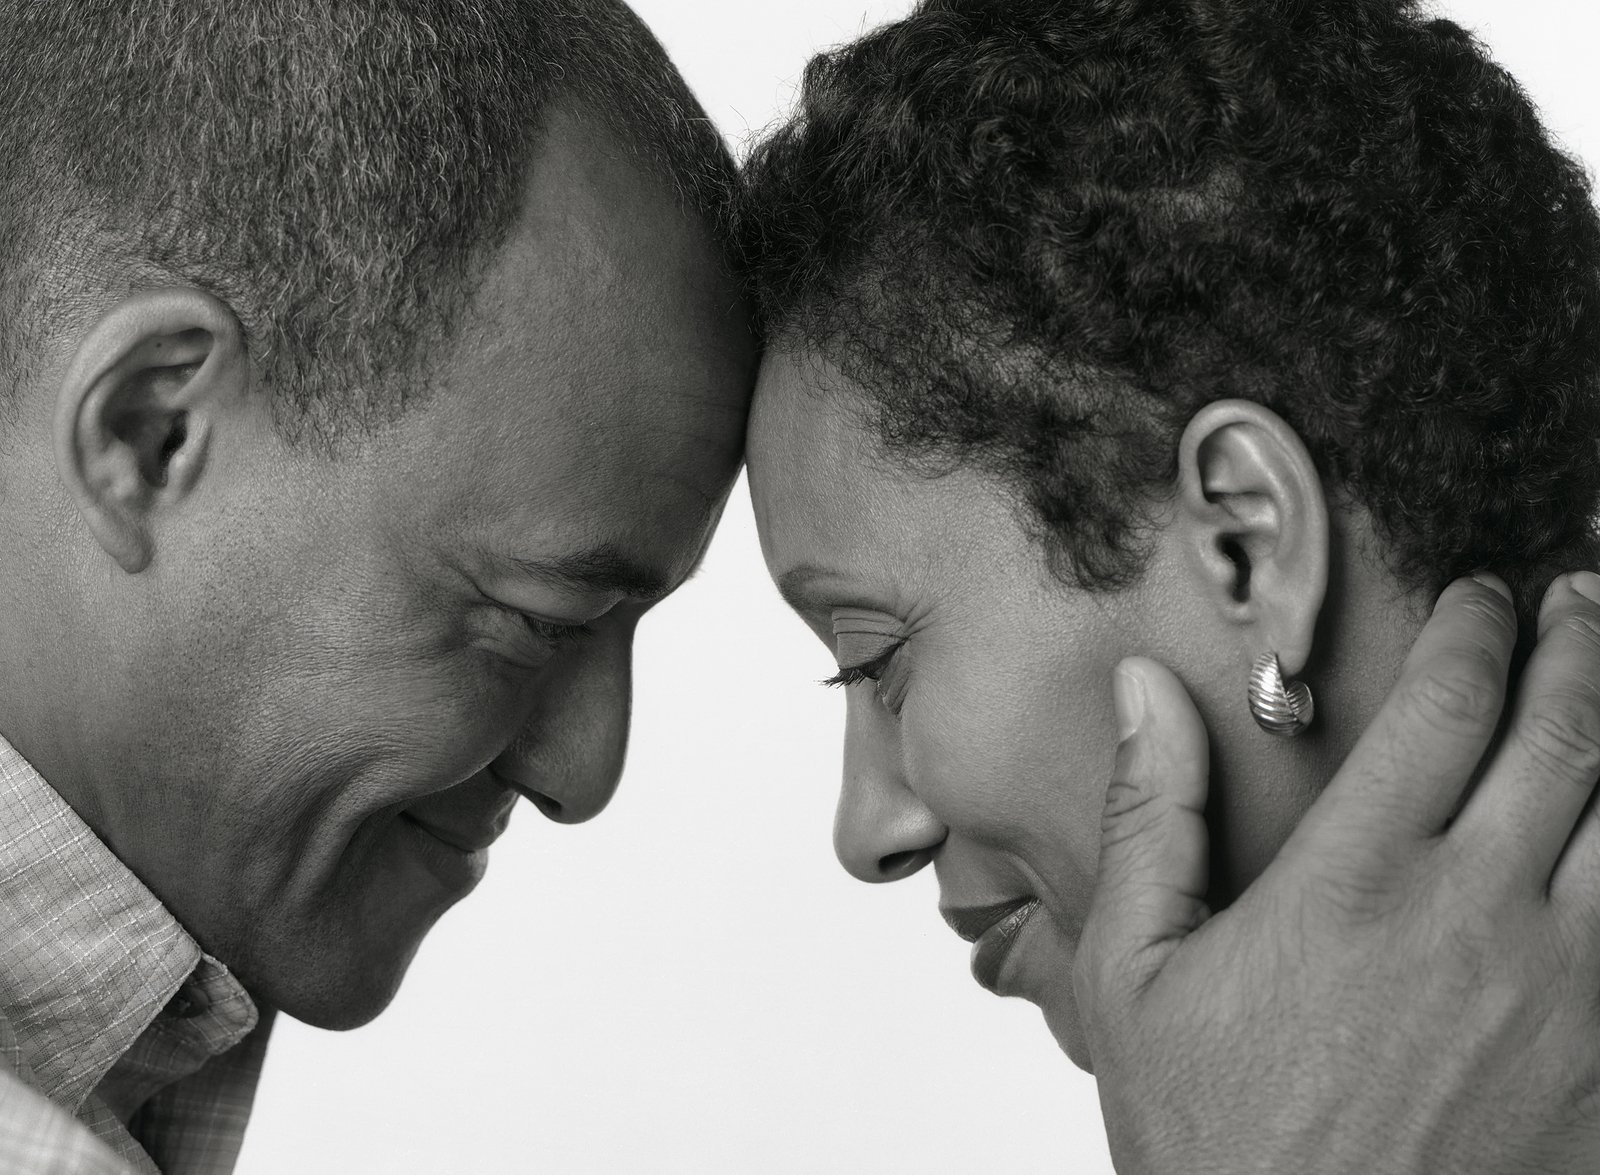 Black and White Portrait of African American Husband Wife on white background. You can get therapy for couples dealing with addiction in New Jersey here with a NJ addiction therapist for couples therapy and marriage counseling in online therapy in New Jersey. At Mountainside Counseling Center, you can get family addiction counseling in Mountainside, NJ near Westfield, NJ here.